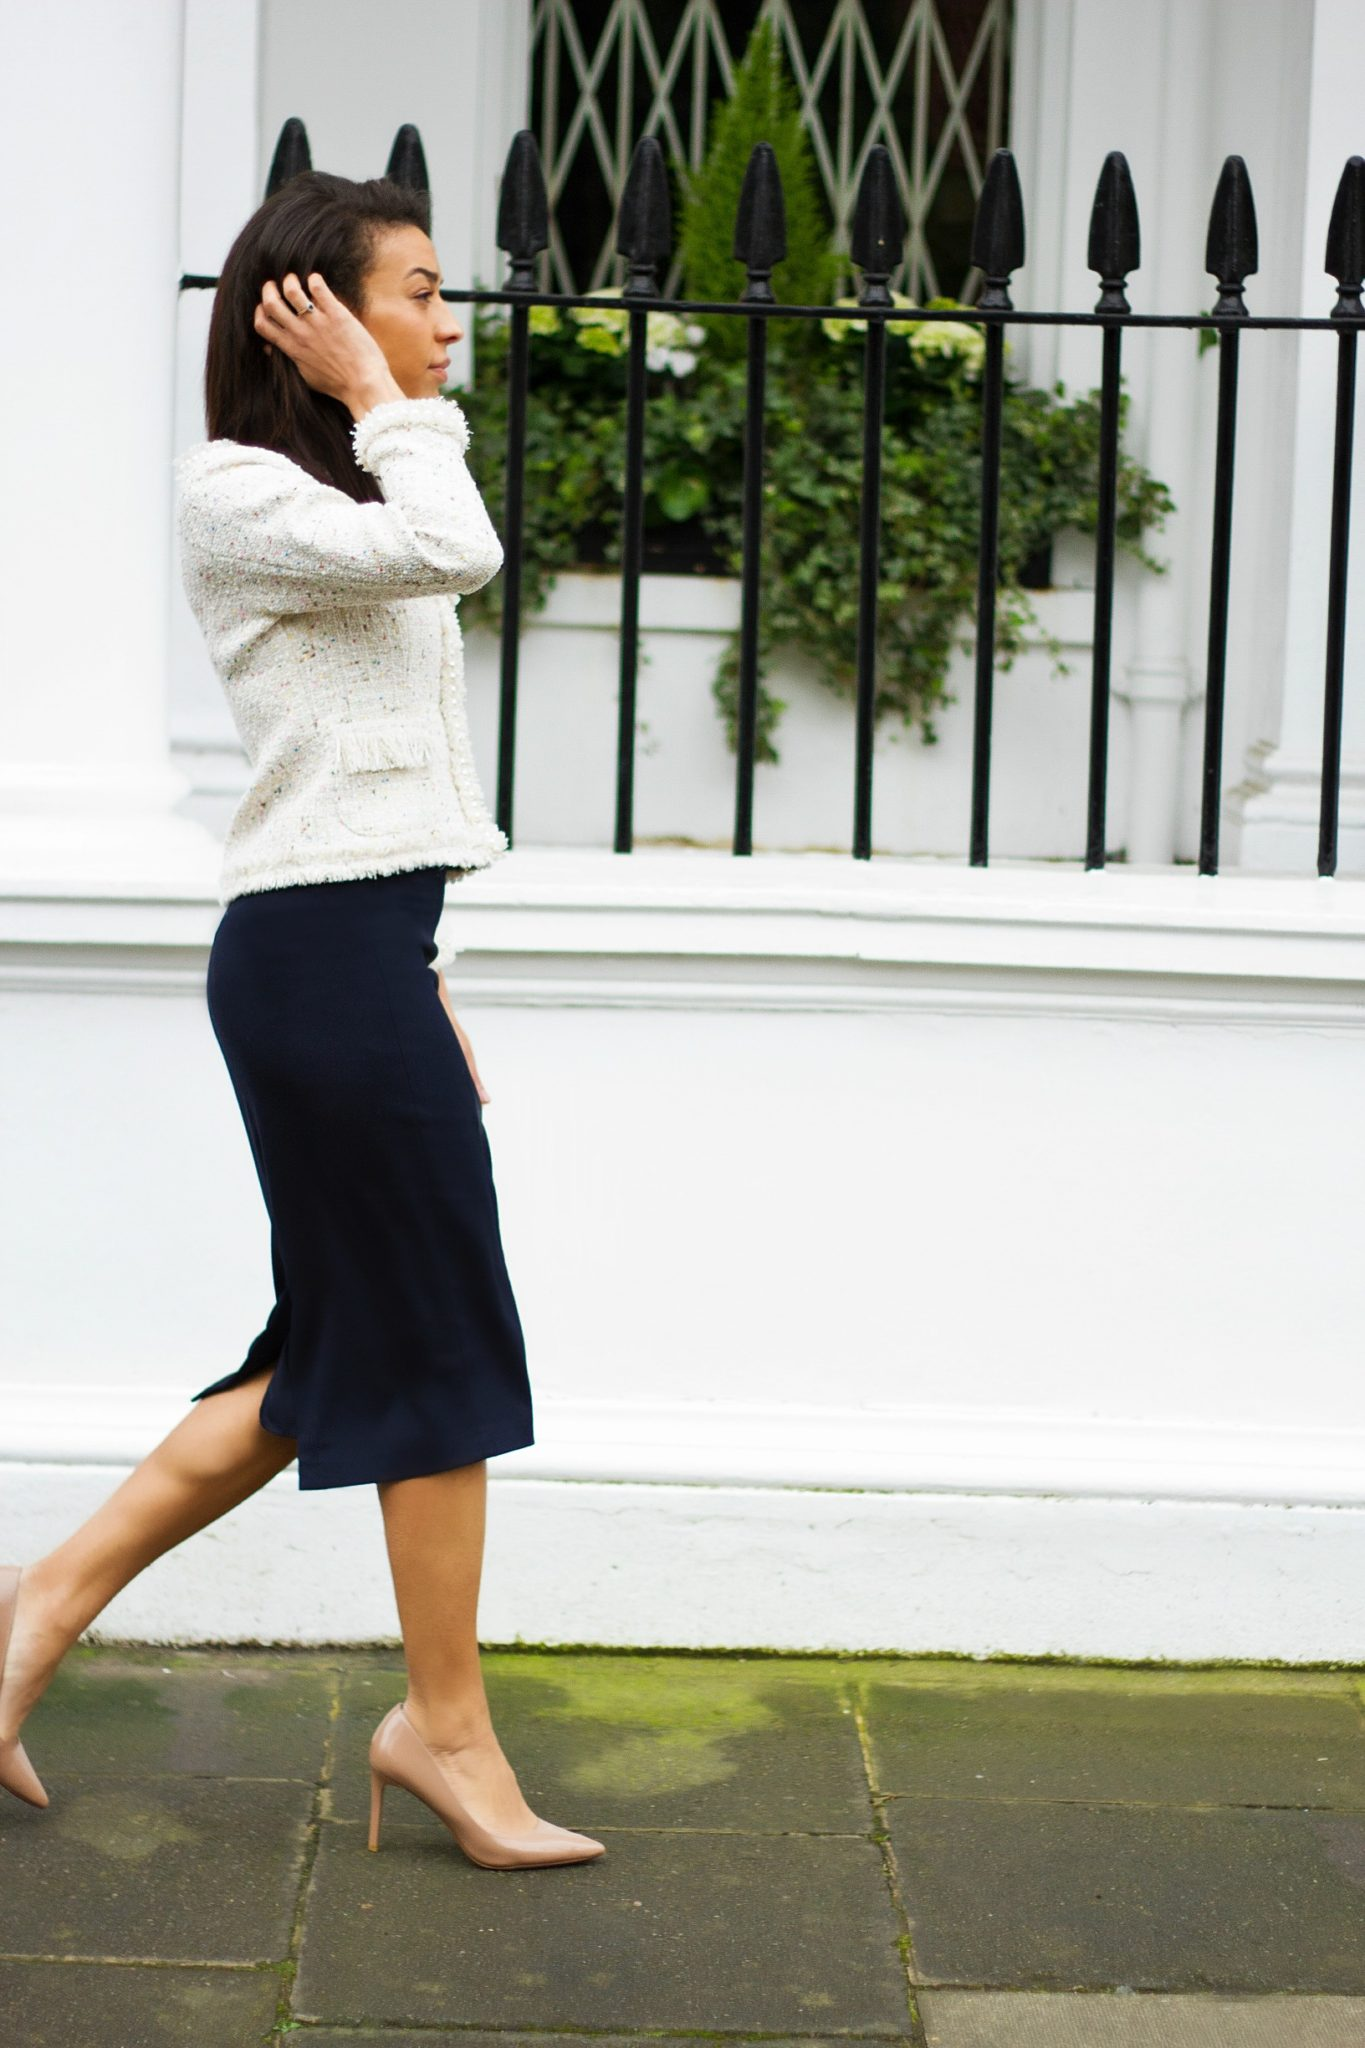 Corporate-Style-Story-Cream-Chanel-Style-Jacket-Navy-Blue-Skirt-Cream-Court-Shoes-01